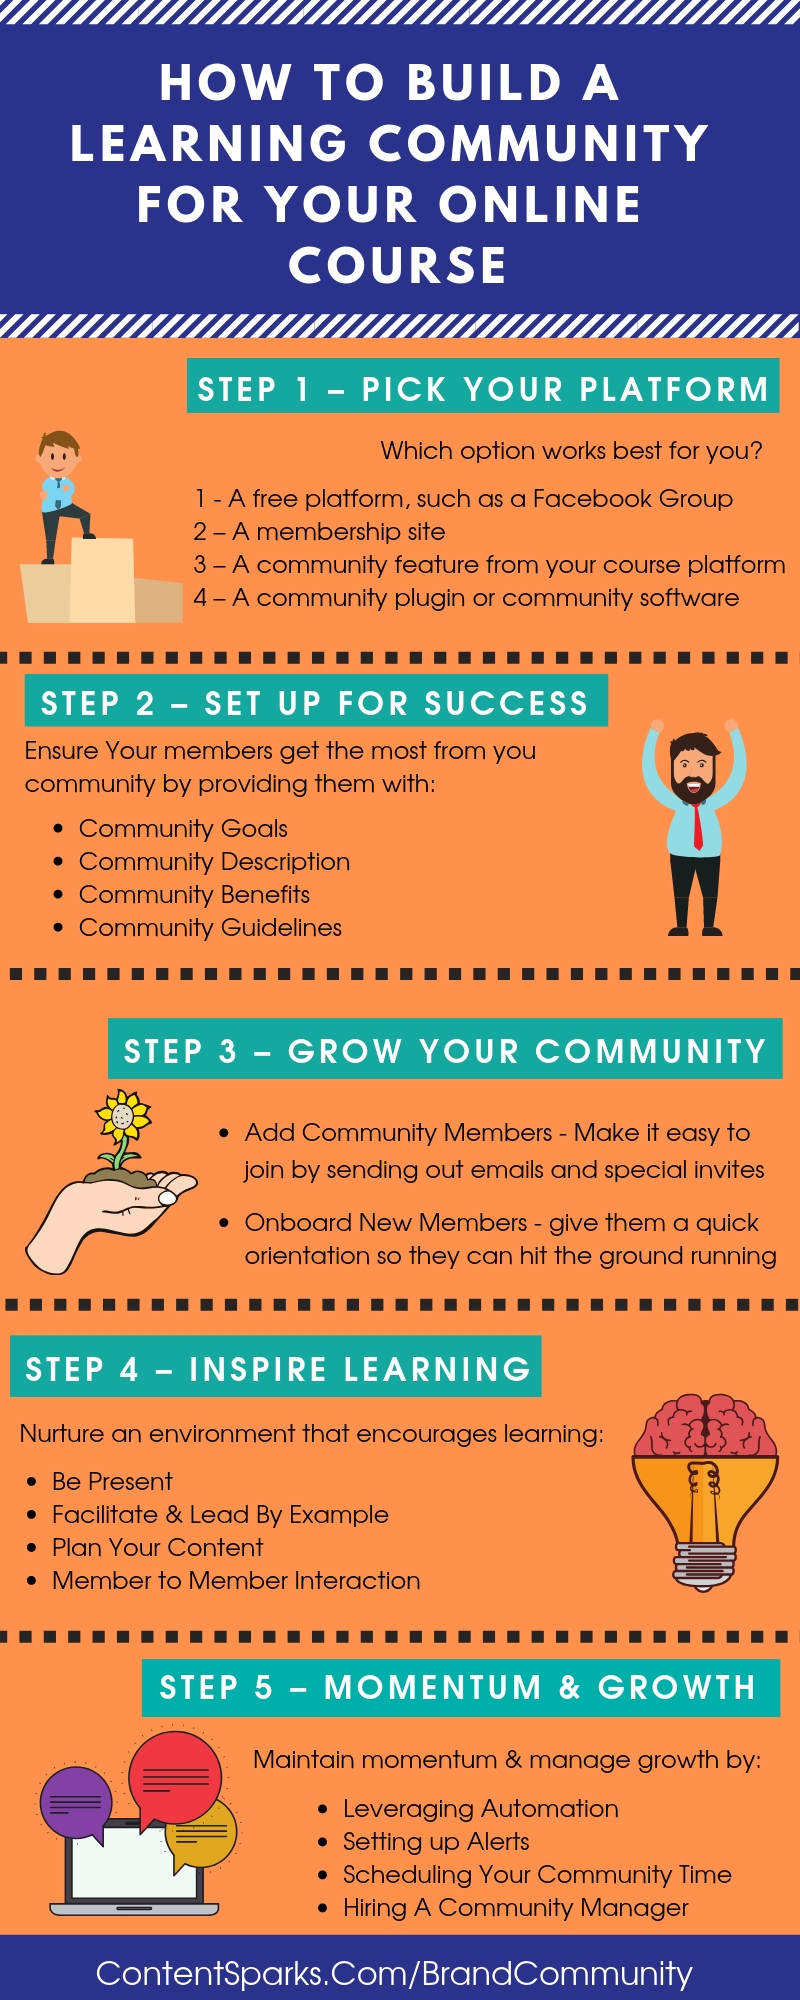 Build Learning Community for Online Course